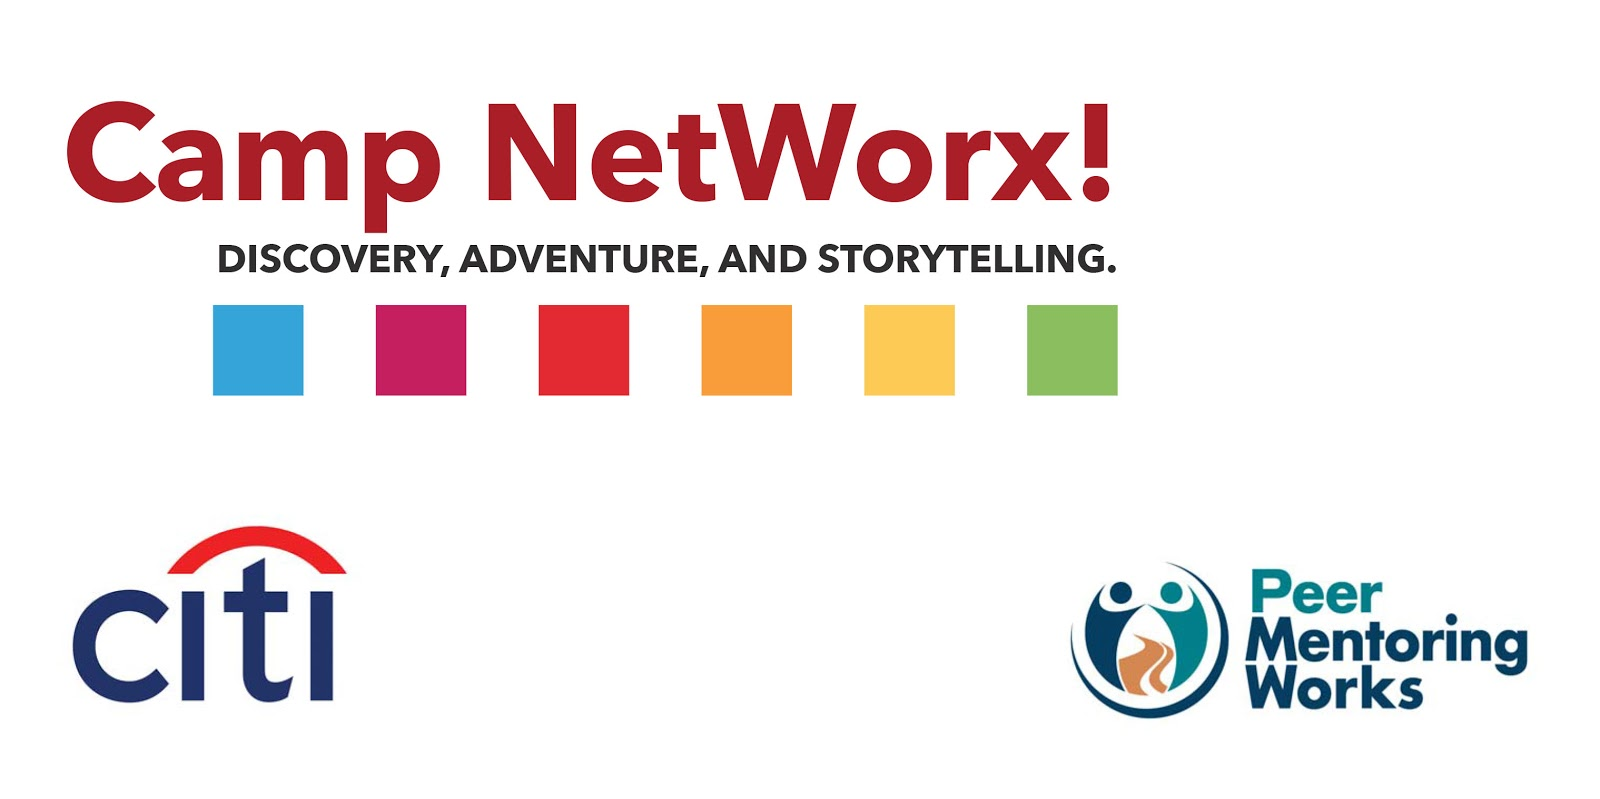 The Camp NetWorx! logo with the Citibank logo below to the left and the Peer MentoringWorks logo to the bottom right.